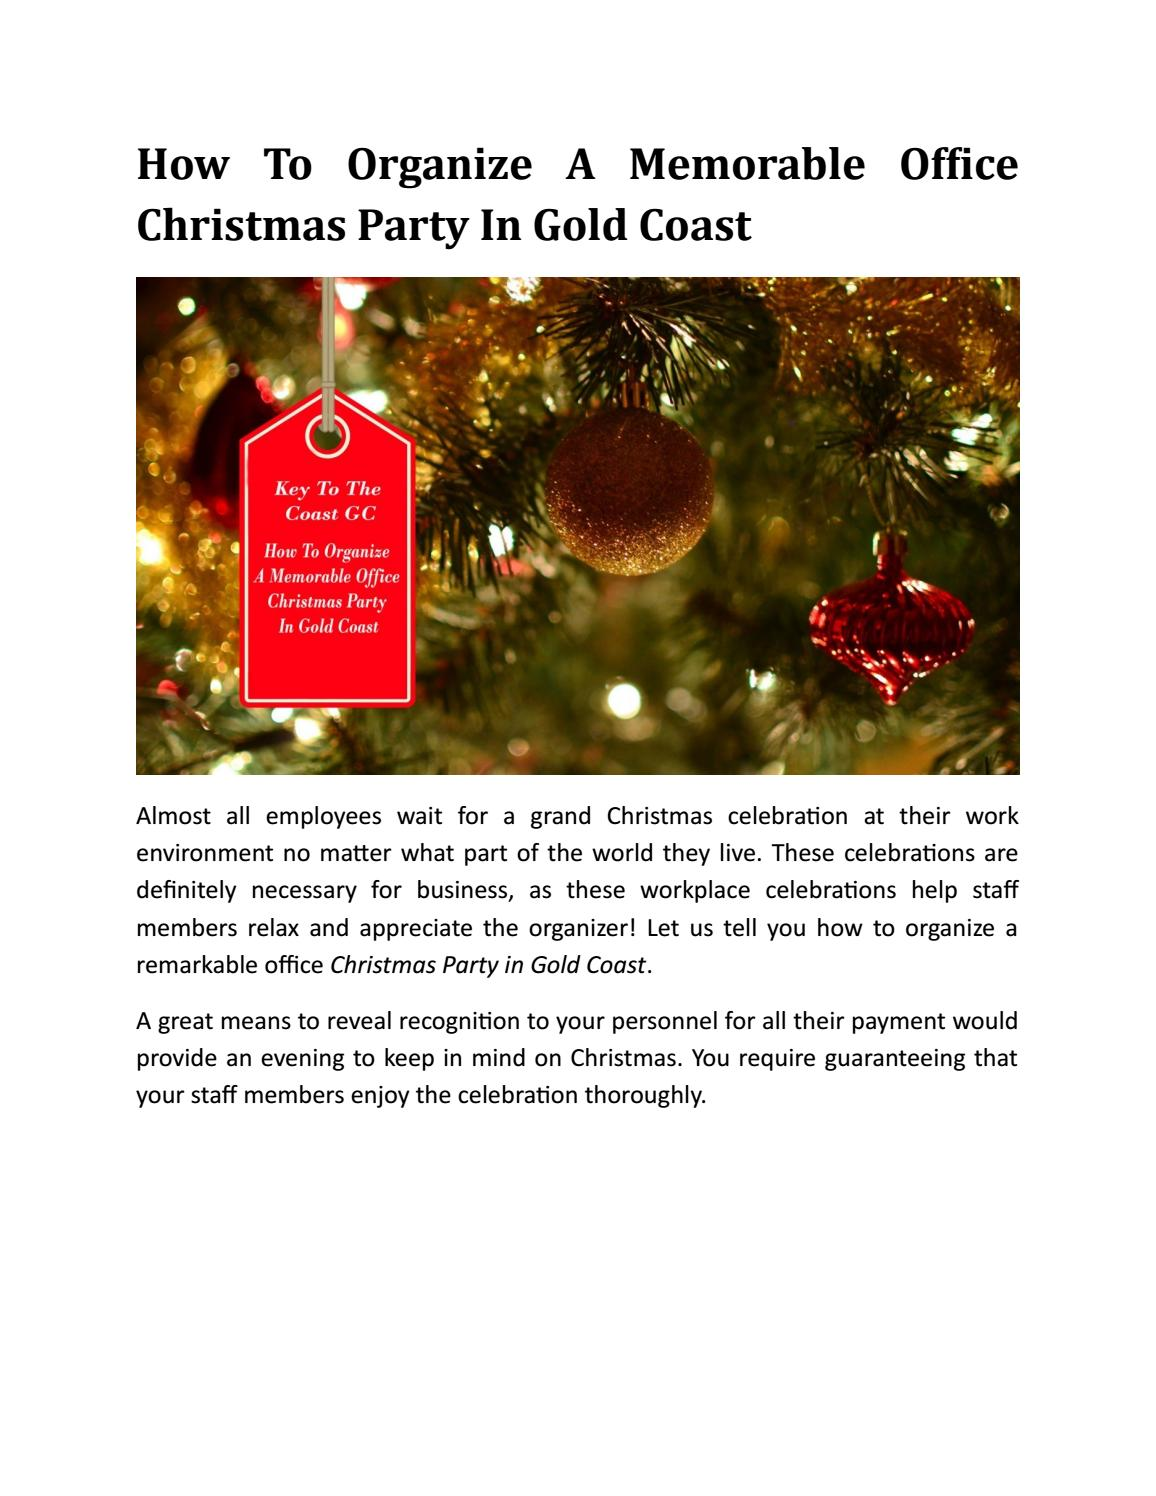 How To Organize A Memorable Office Christmas Party In Gold Coast By Edwardellis720 Issuu